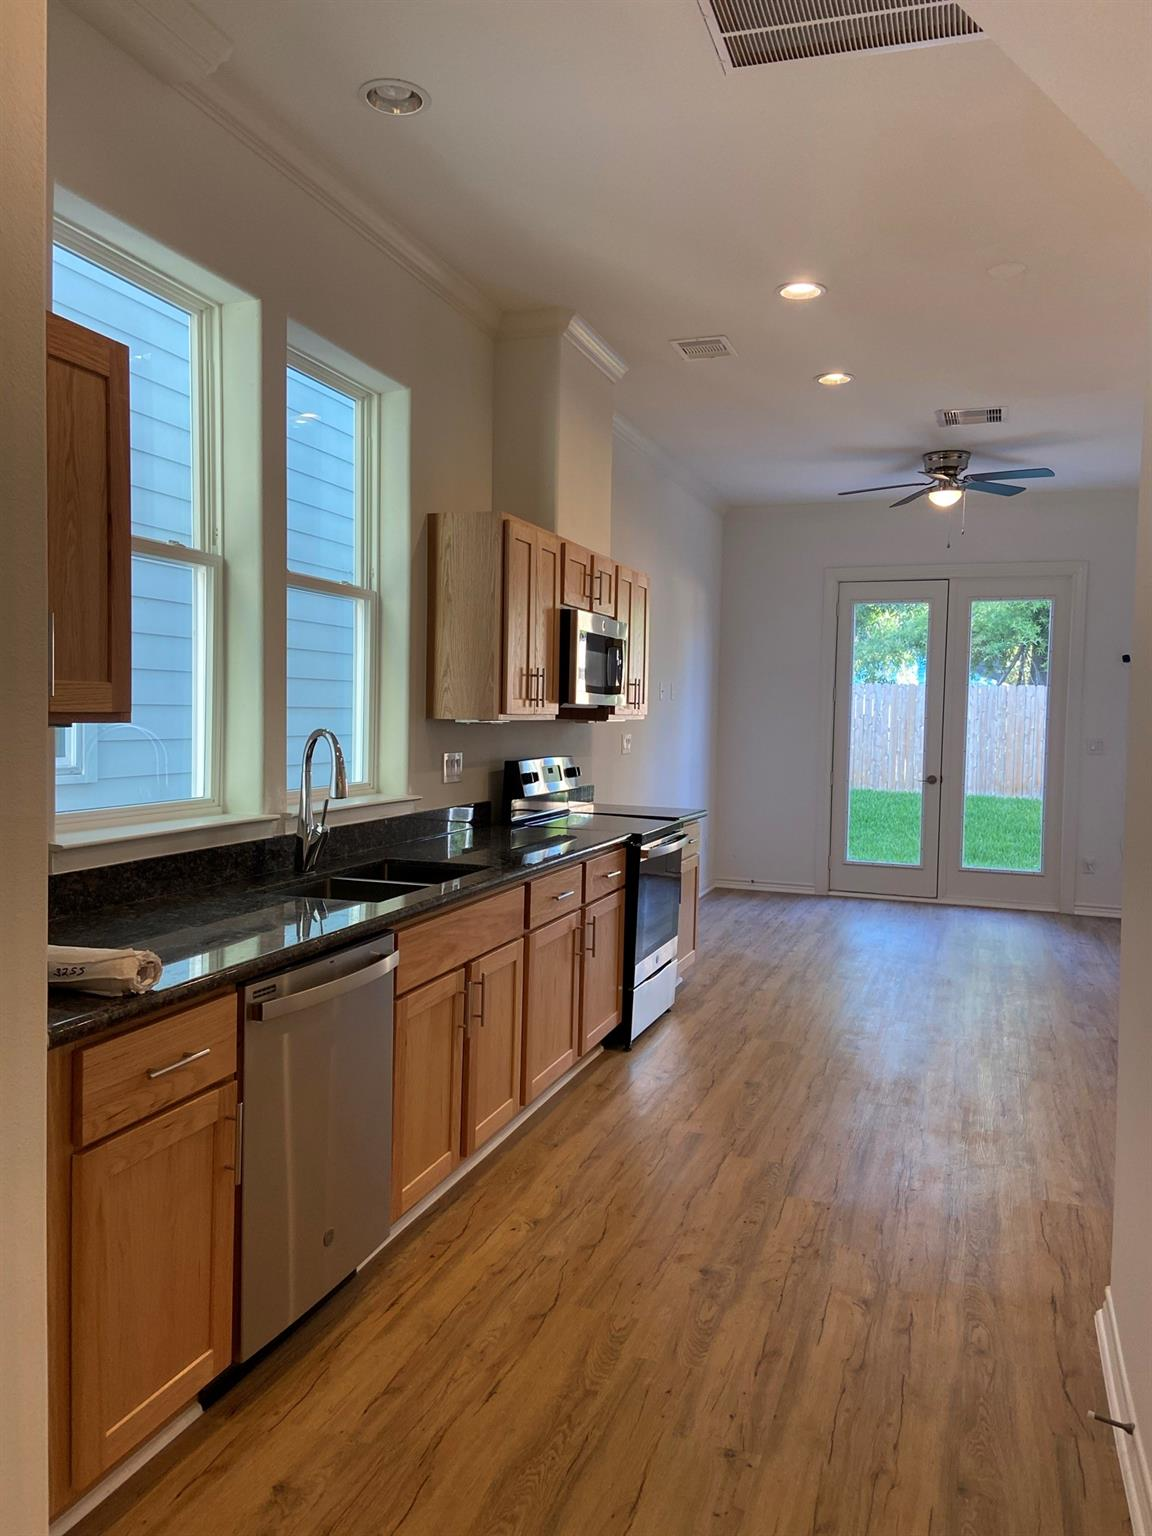 3251 Real Street Property Photo